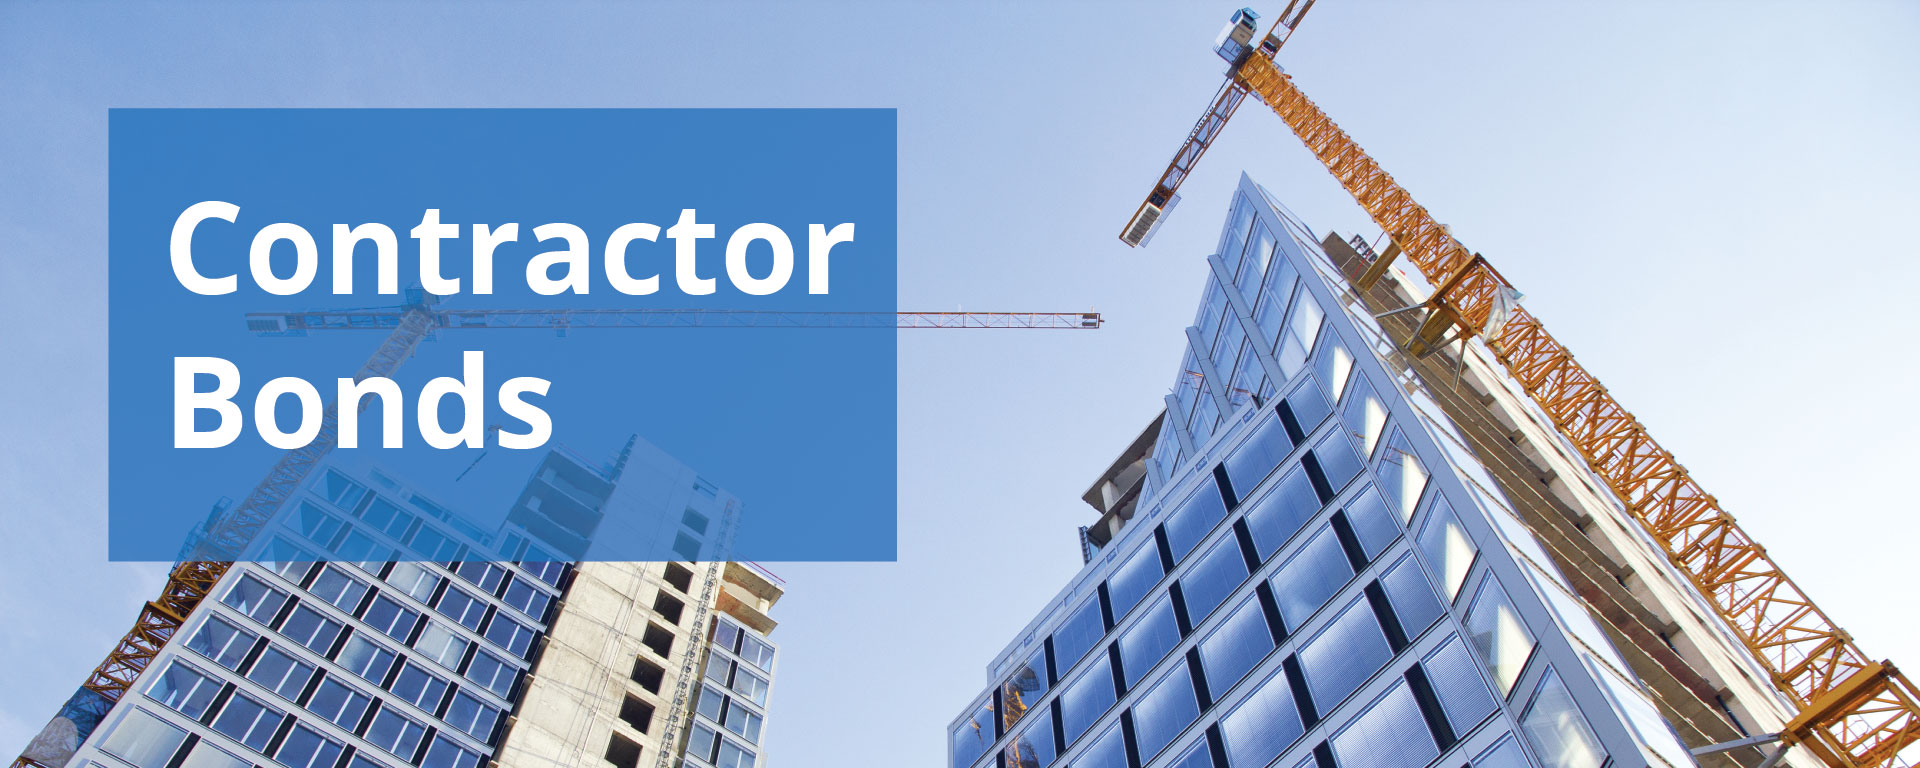 5 Things You Should Know About a Contractor Bond